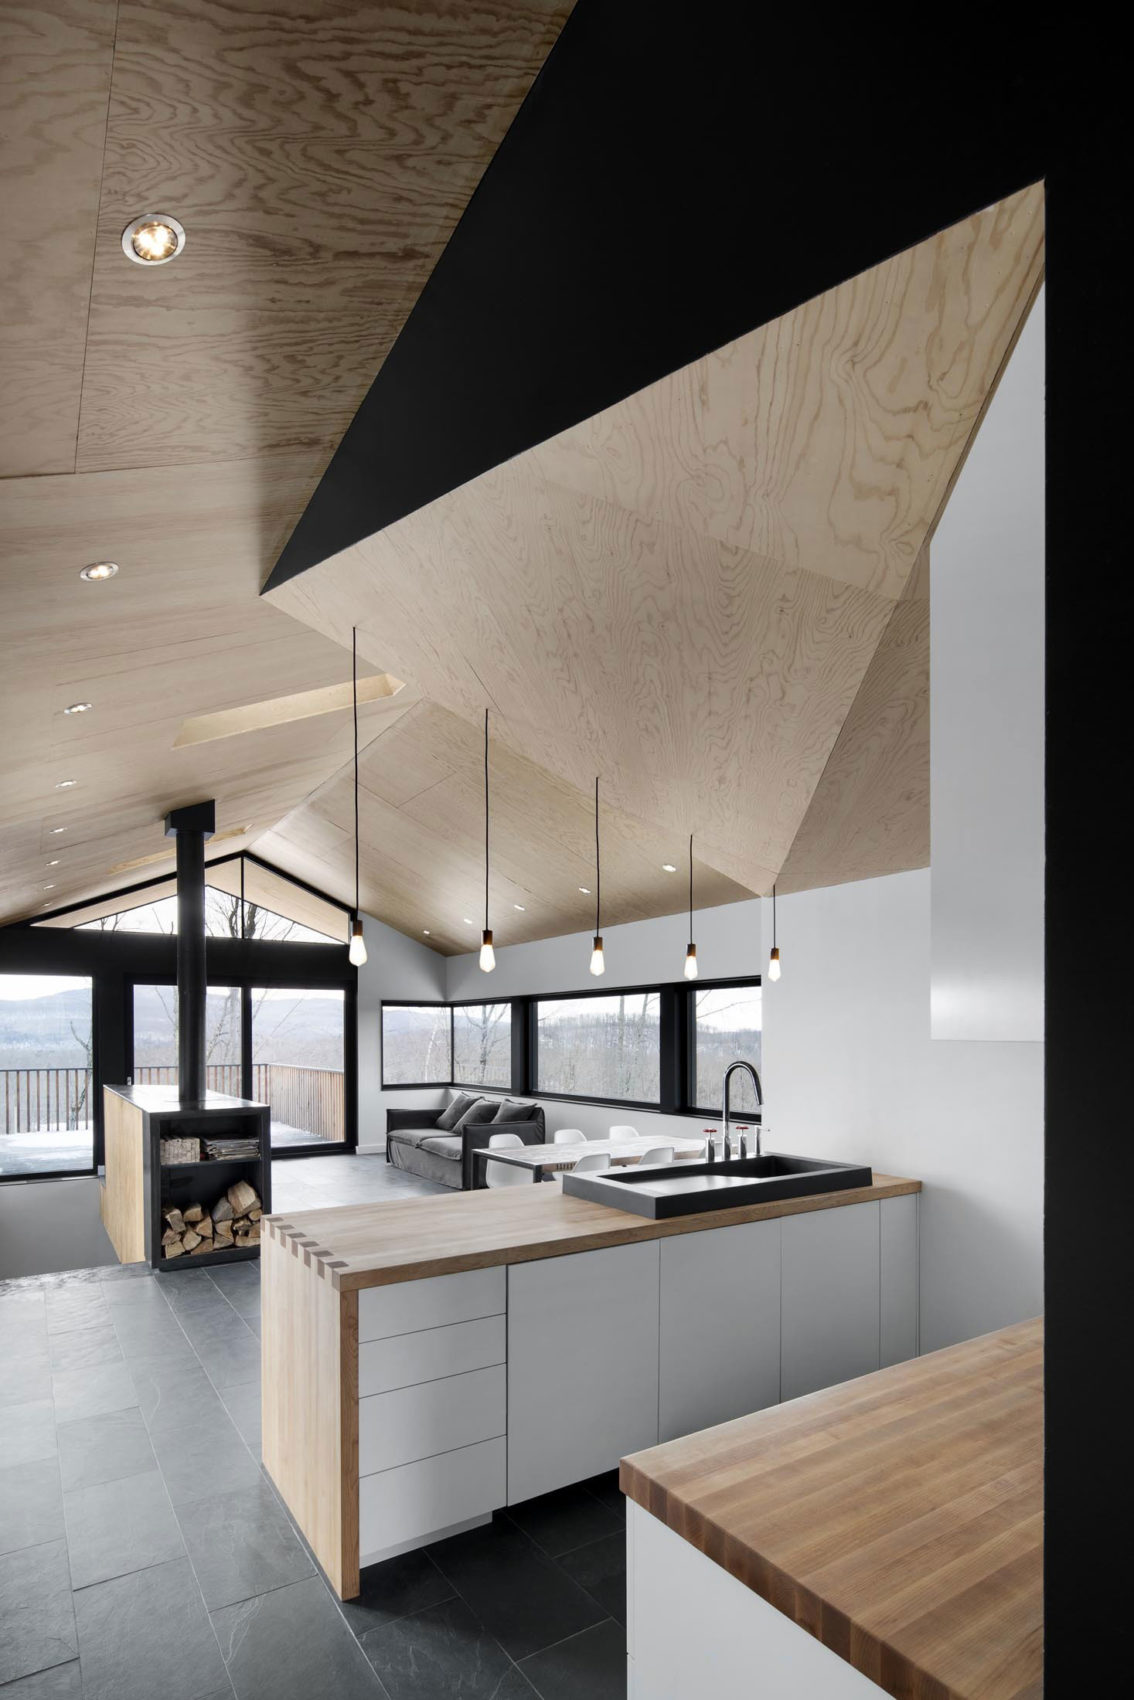 Bolton Residence by NatureHumaine (14)